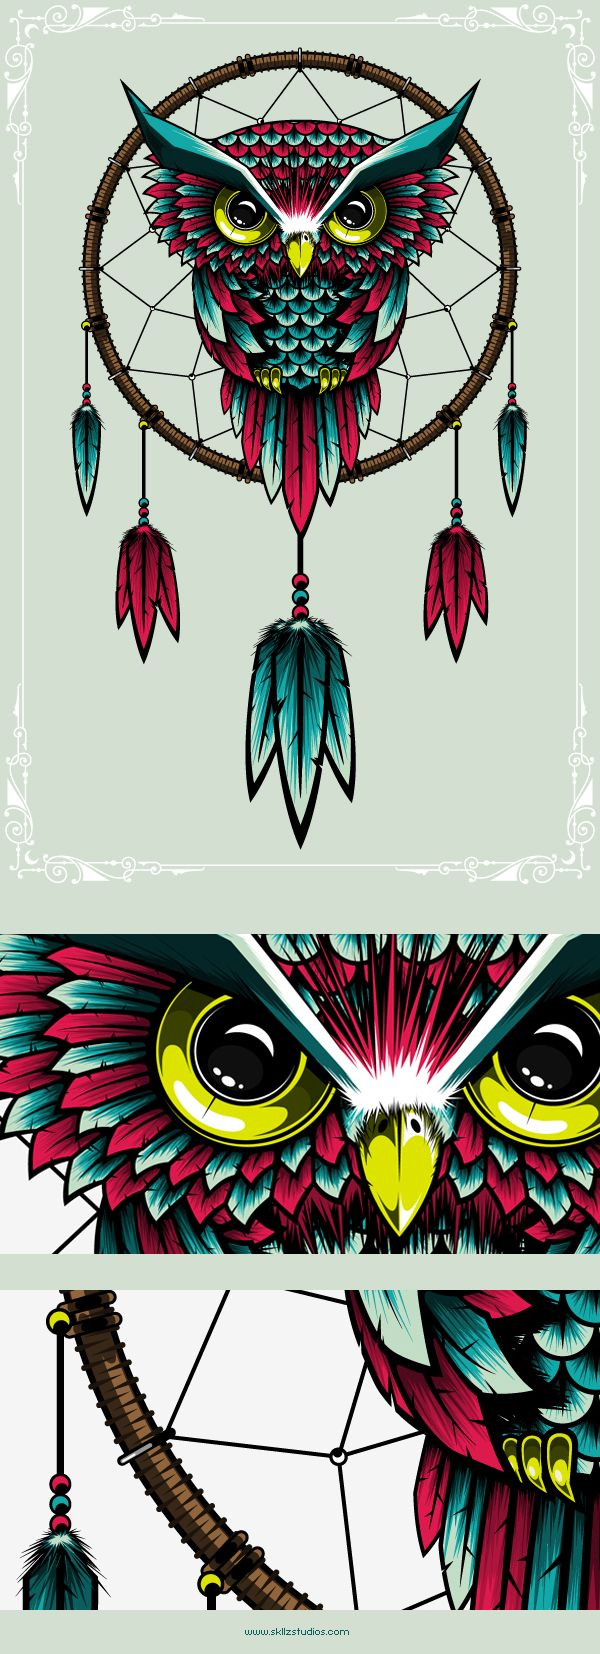 Dreamcatcher by exageth.deviantart.com on @deviantART